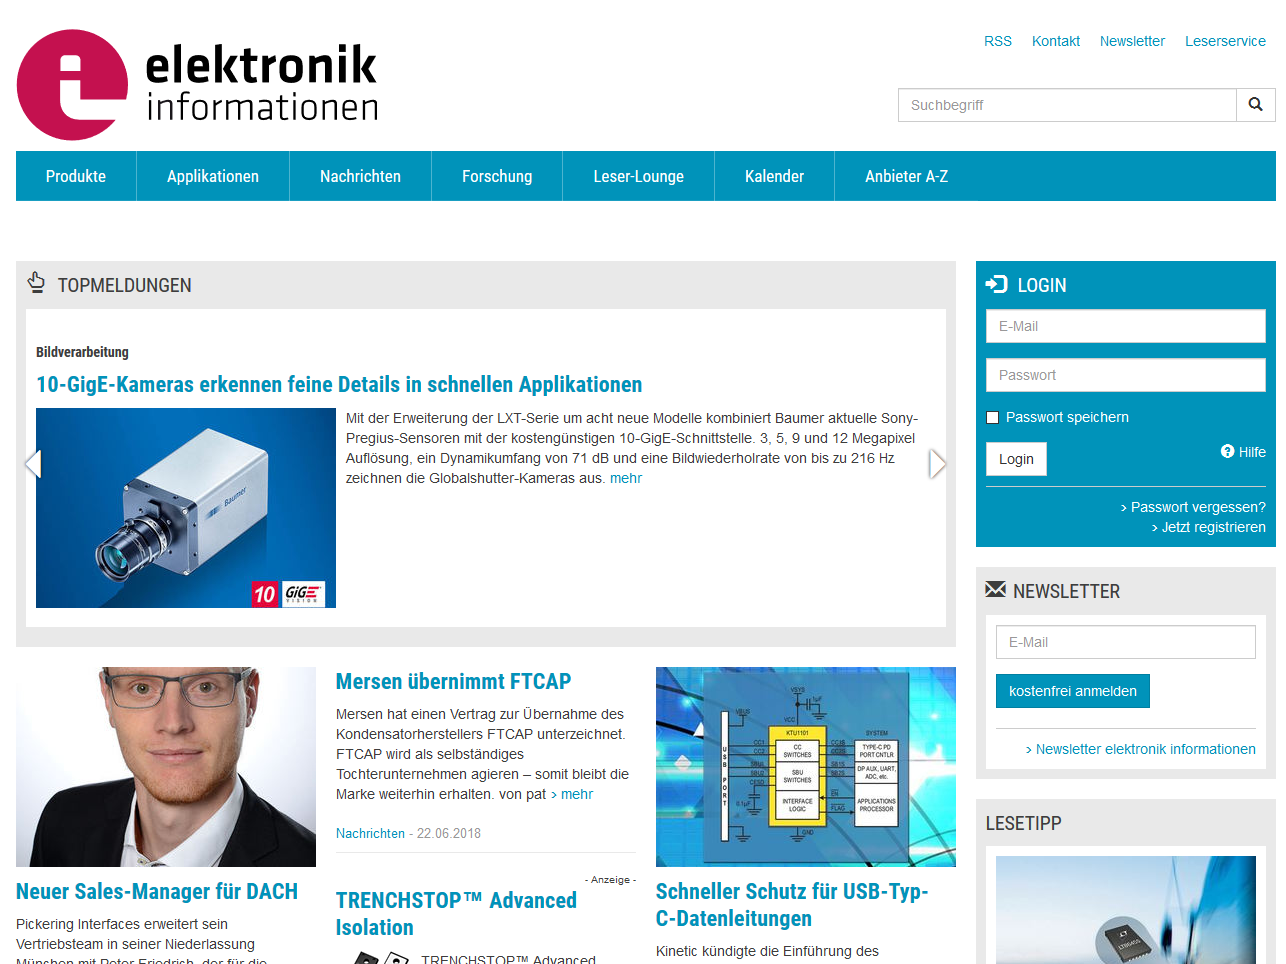 elektronik informationen Webseite